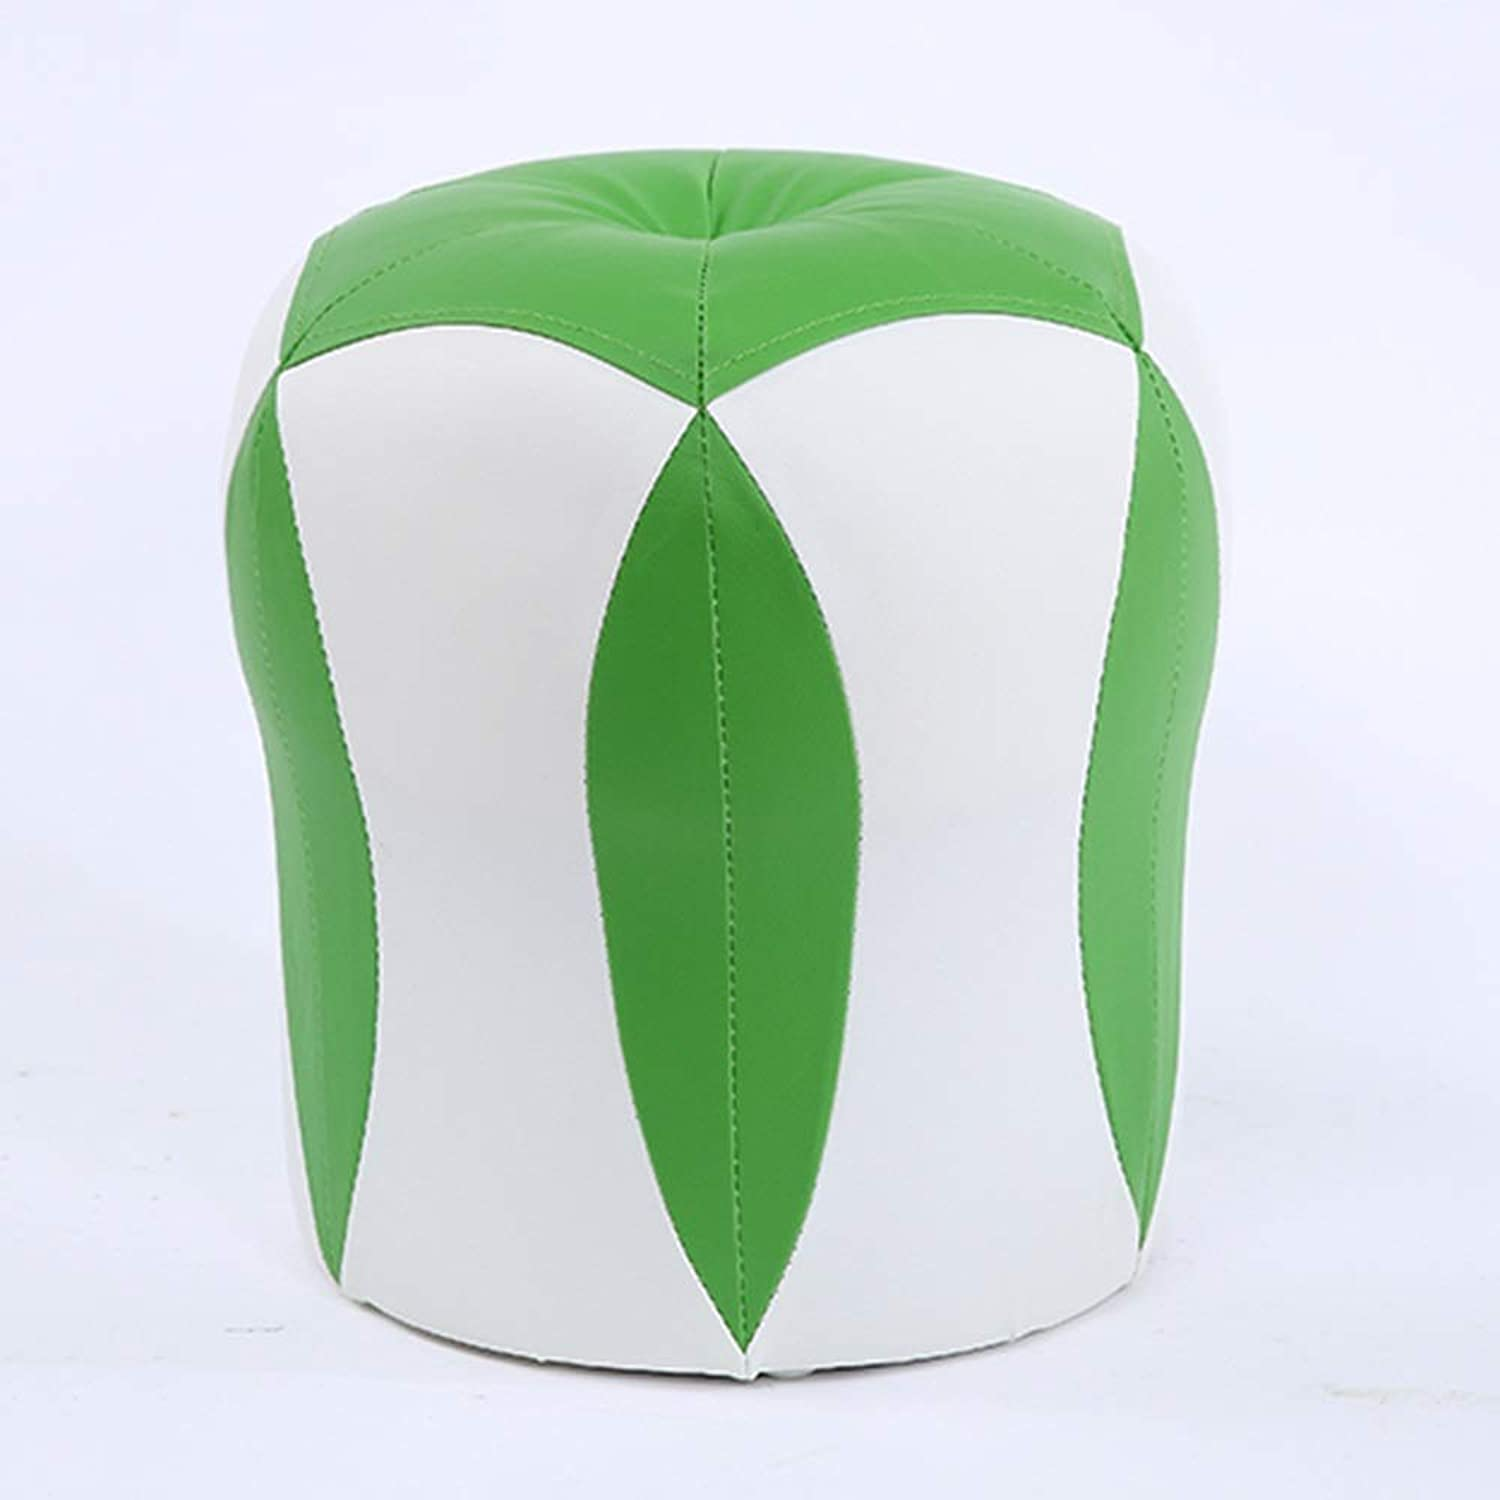 ZXQZ Stool Creative Solid Wood Sofa Stool 31x35cm Household Adult Round Stool (color   Green White)